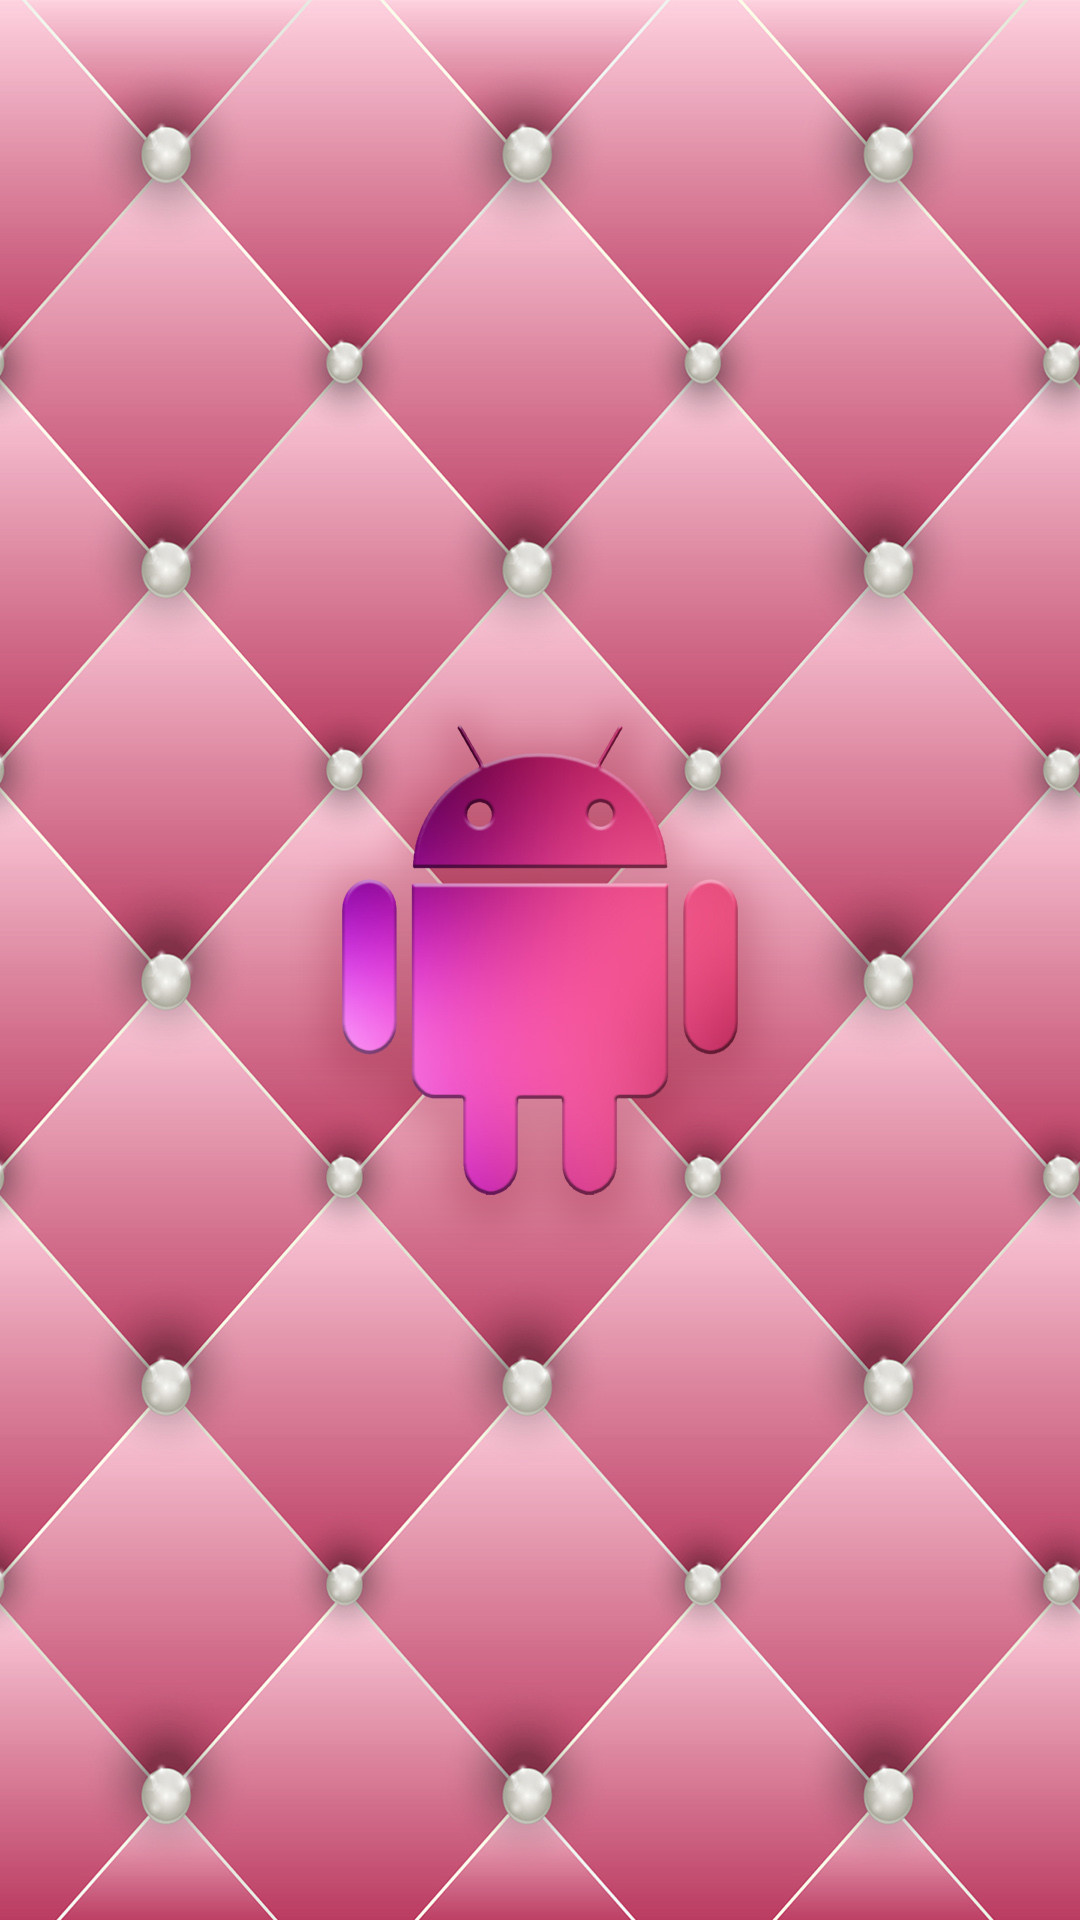 Res: 1080x1920, Download the Android Expensive Pink Diamonds wallpaper